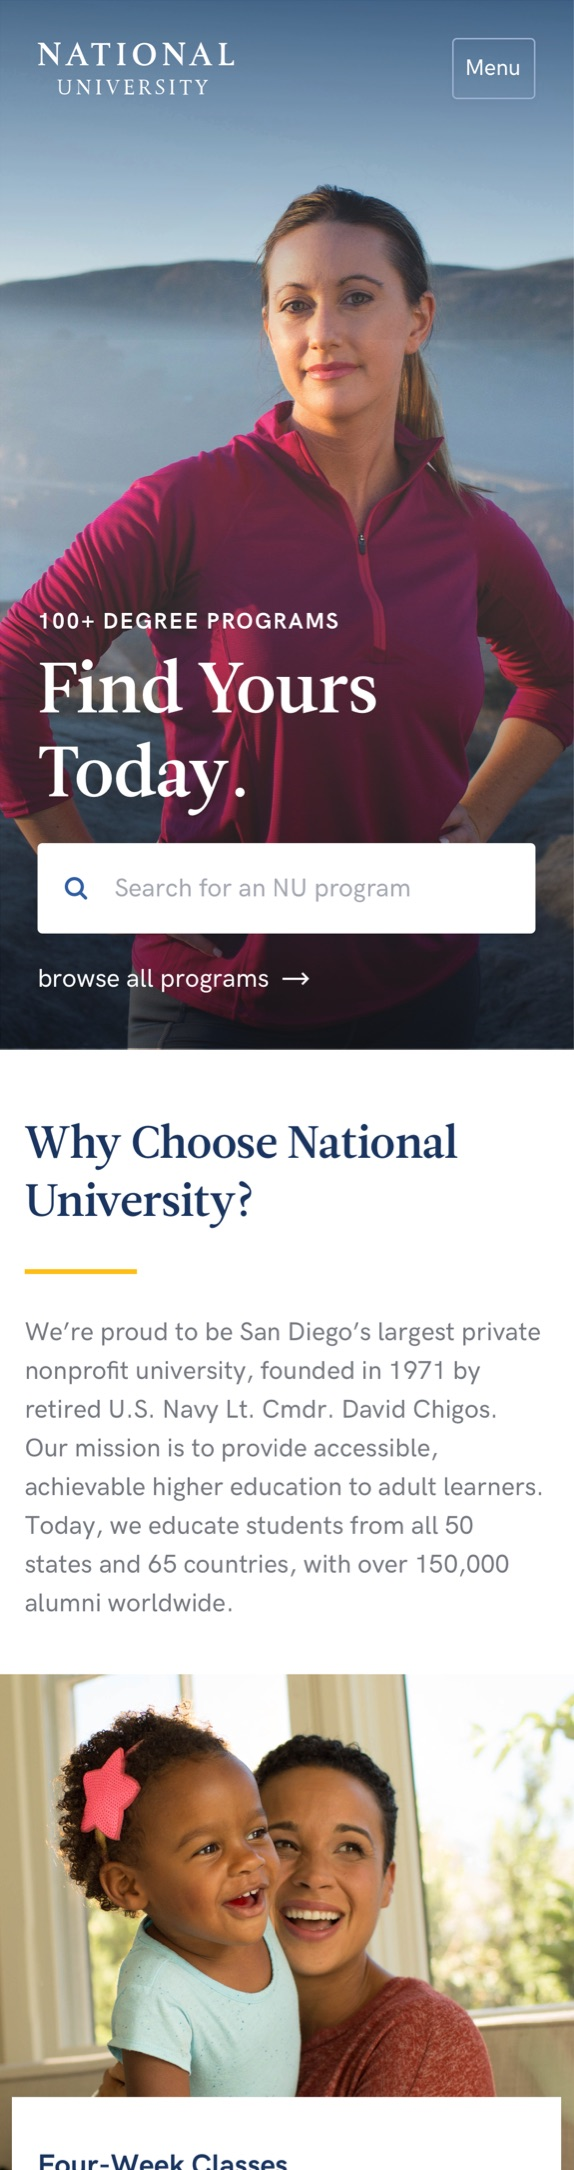 National University mobile screenshot